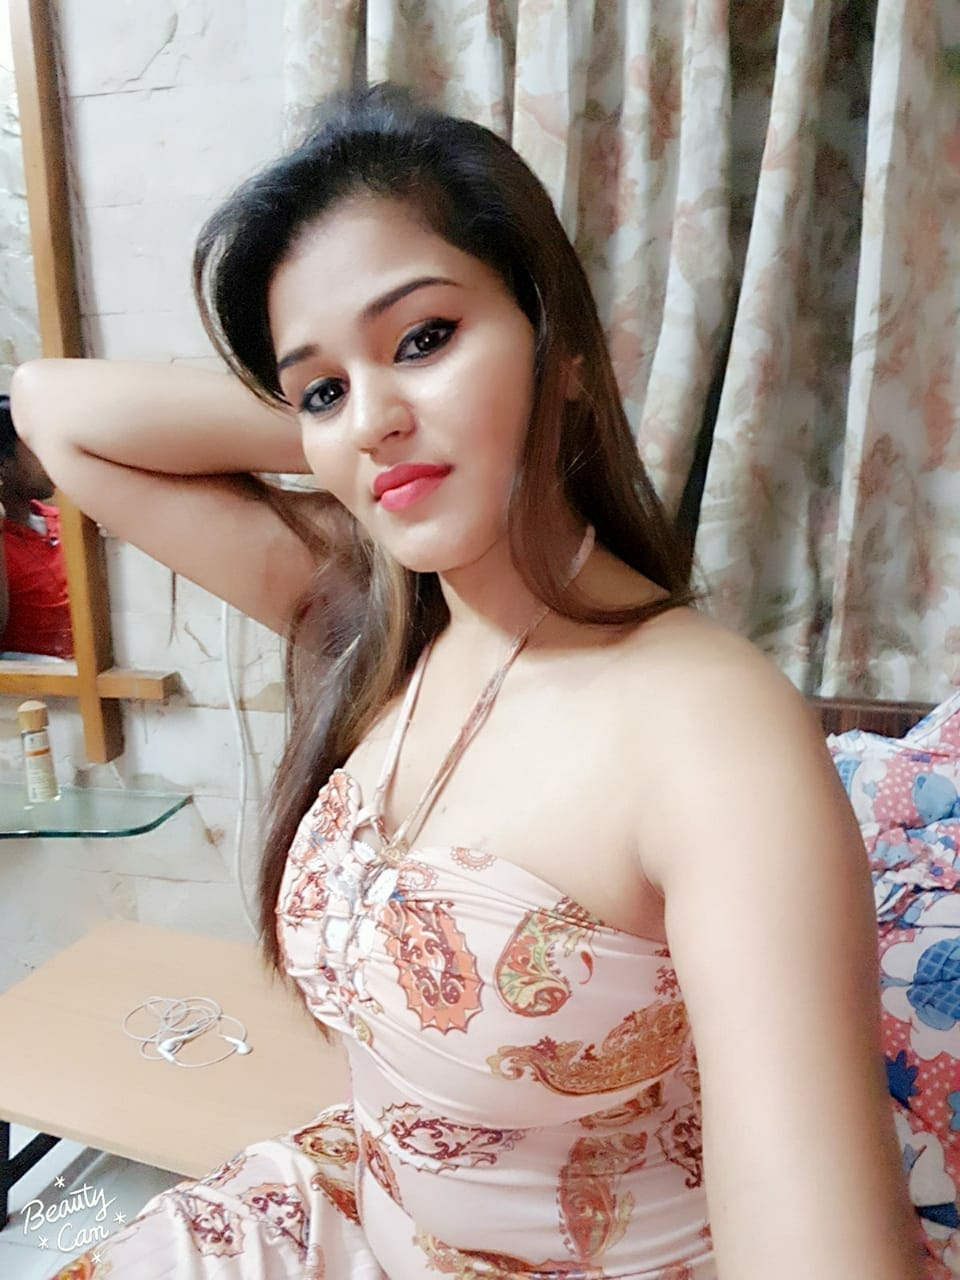 Call Girls In  Bharat Nagar